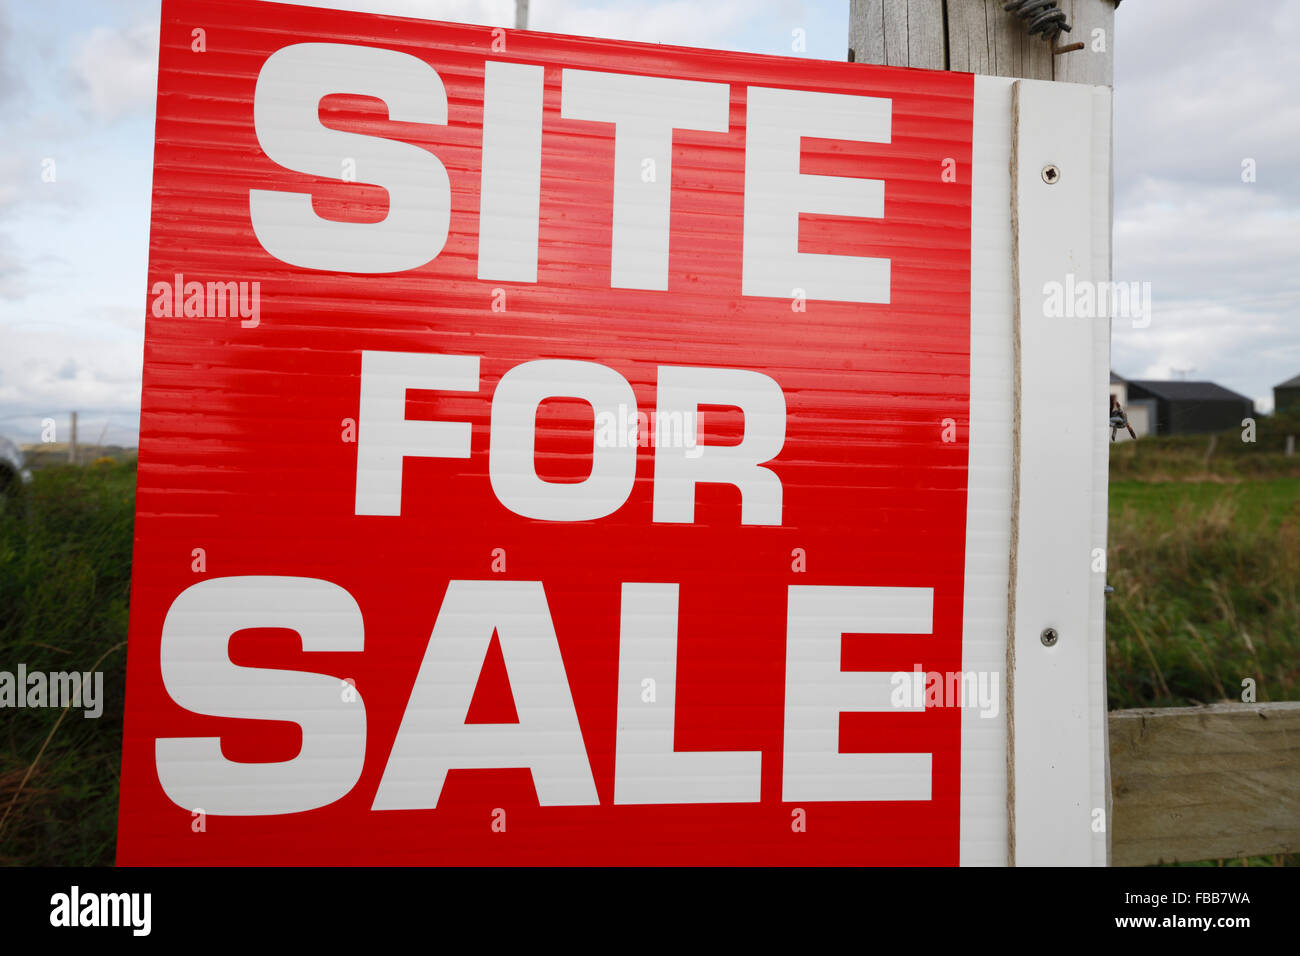 site for sale sign - Stock Image